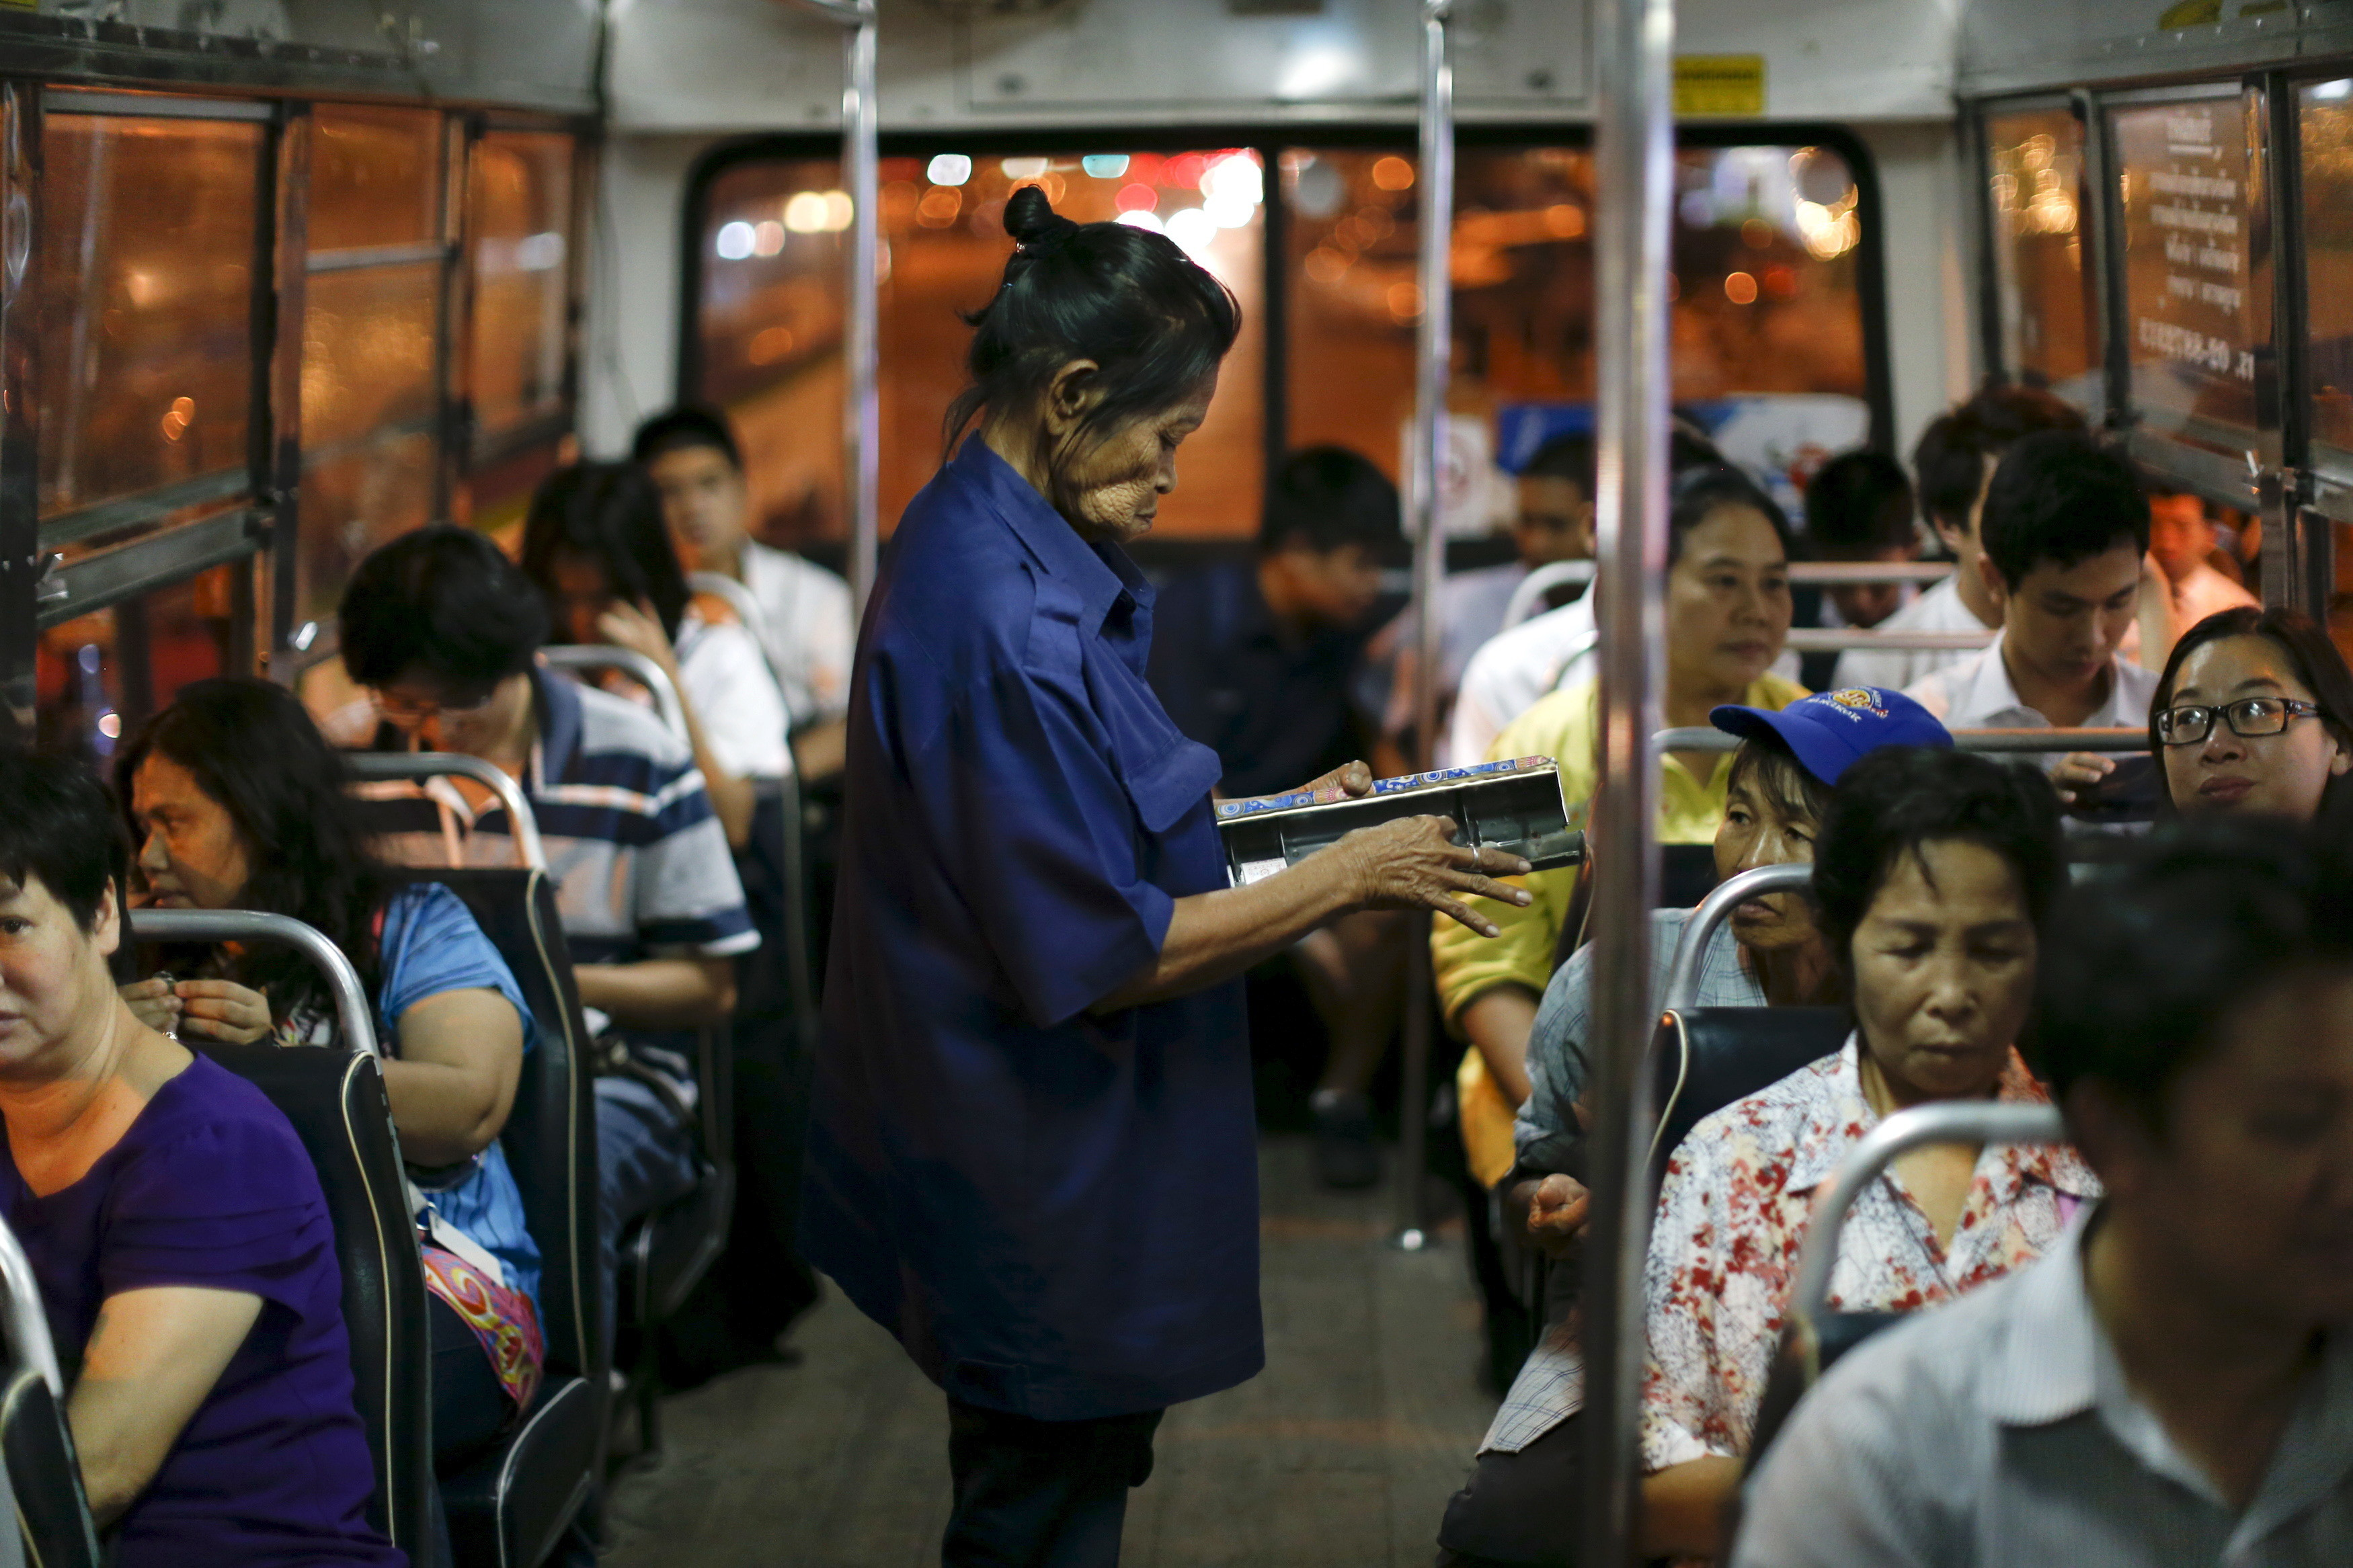 Pranom Chartyothin, a 72-year-old bus conductor, sells and collects bus tickets in downtown Bangkok, Thailand, February 3, 2016. Such scenes will only become more common in Thailand as its population rapidly ages, unlike its neighbours with more youthful populations. The World Bank estimates the working-age population will shrink by 11 percent by 2040, the fastest contraction among Southeast Asia's developing countries. Thailand's stage of economic development, the rising cost of living and education, and a population waiting longer to get married are among the reasons it is ageing more quickly than its neighbours. An effective contraception programme in the 1970s also played a part, said Sutayut Osornprasop, a human development specialist at the World Bank in Thailand.  Picture taken February 3, 2016. REUTERS/Jorge Silva       TPX IMAGES OF THE DAY      - GF10000302961